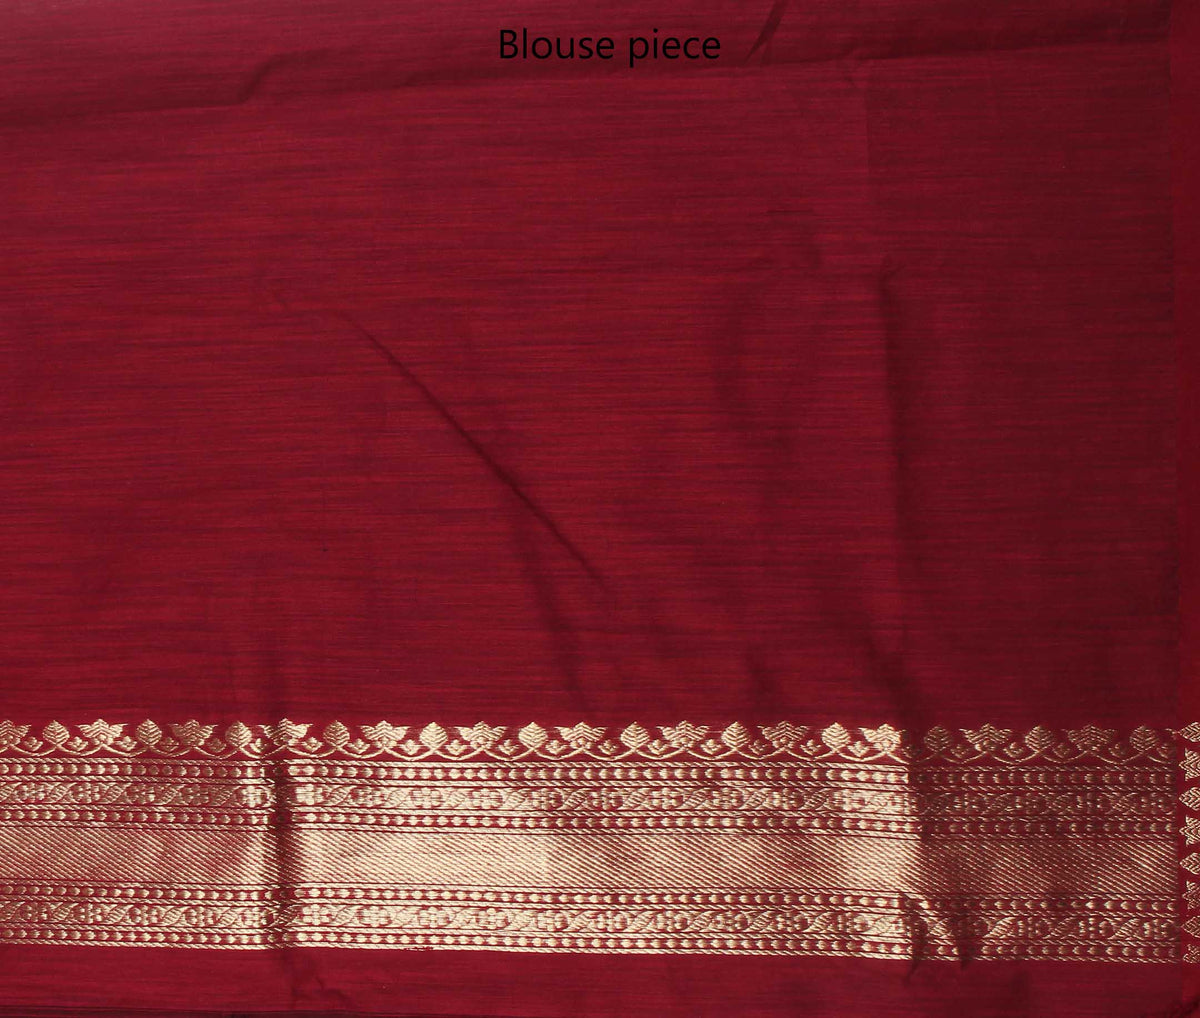 Black Tussar Silk Handwoven Banarasi saree with round shape motifs (4) blouse